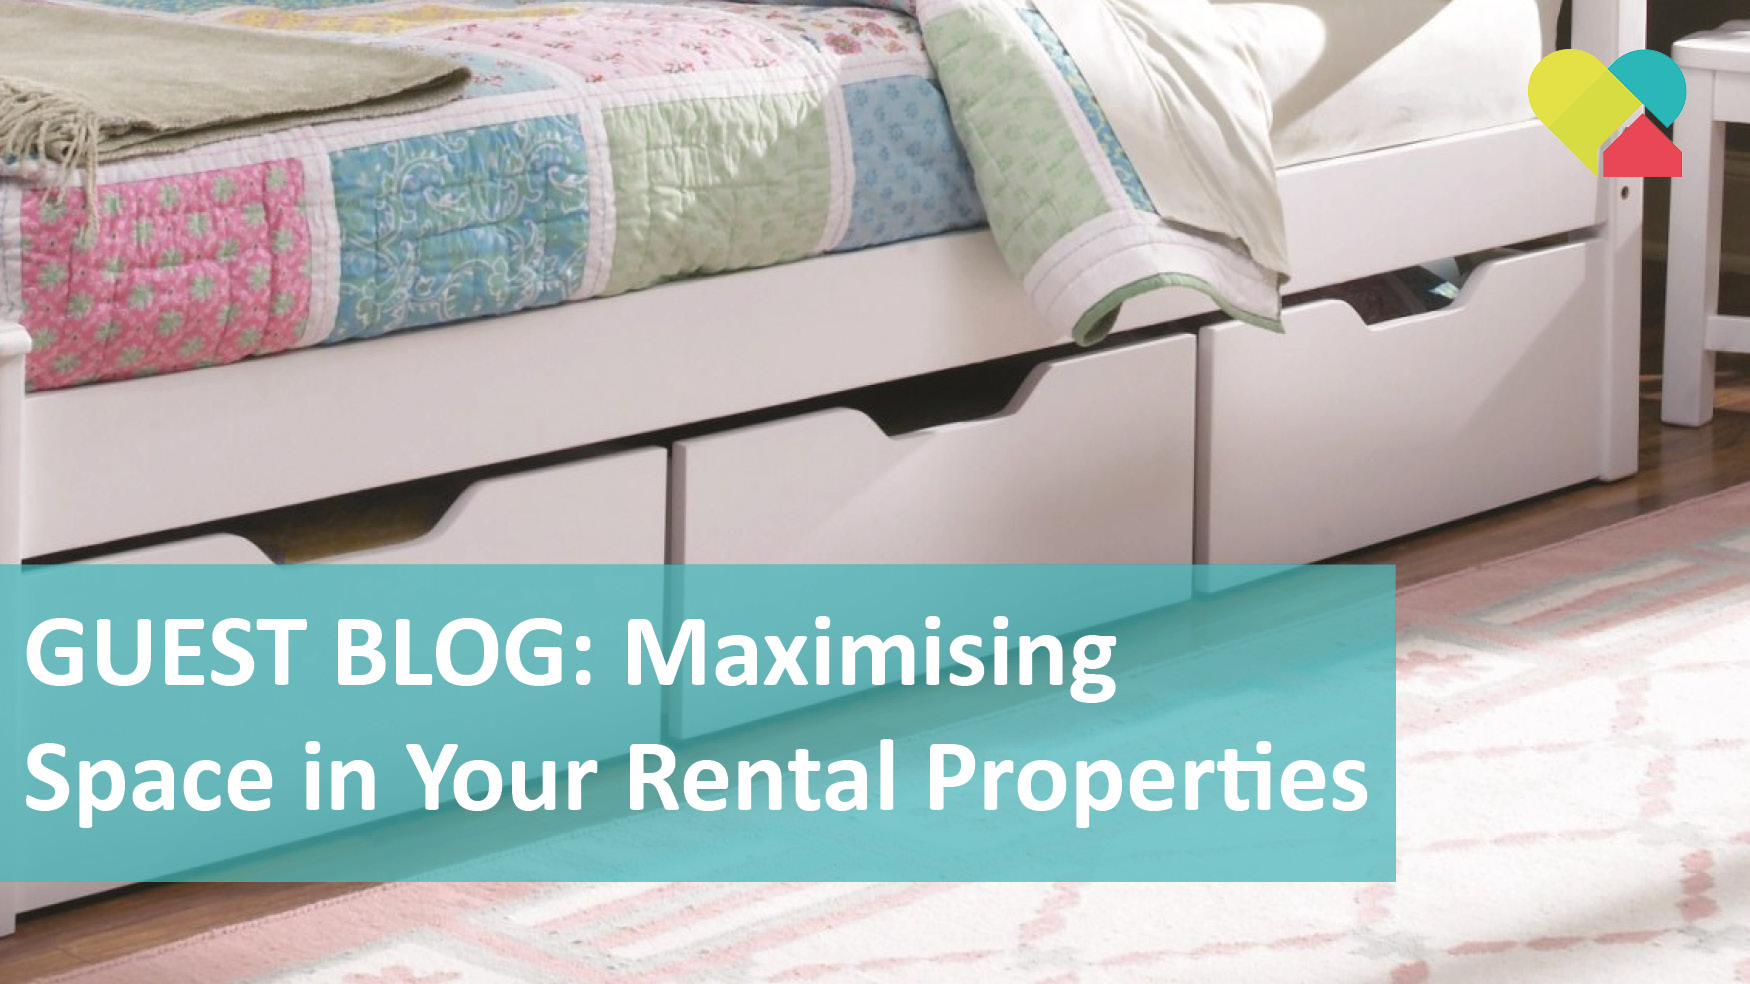 Maximising Space in Your Rental Properties